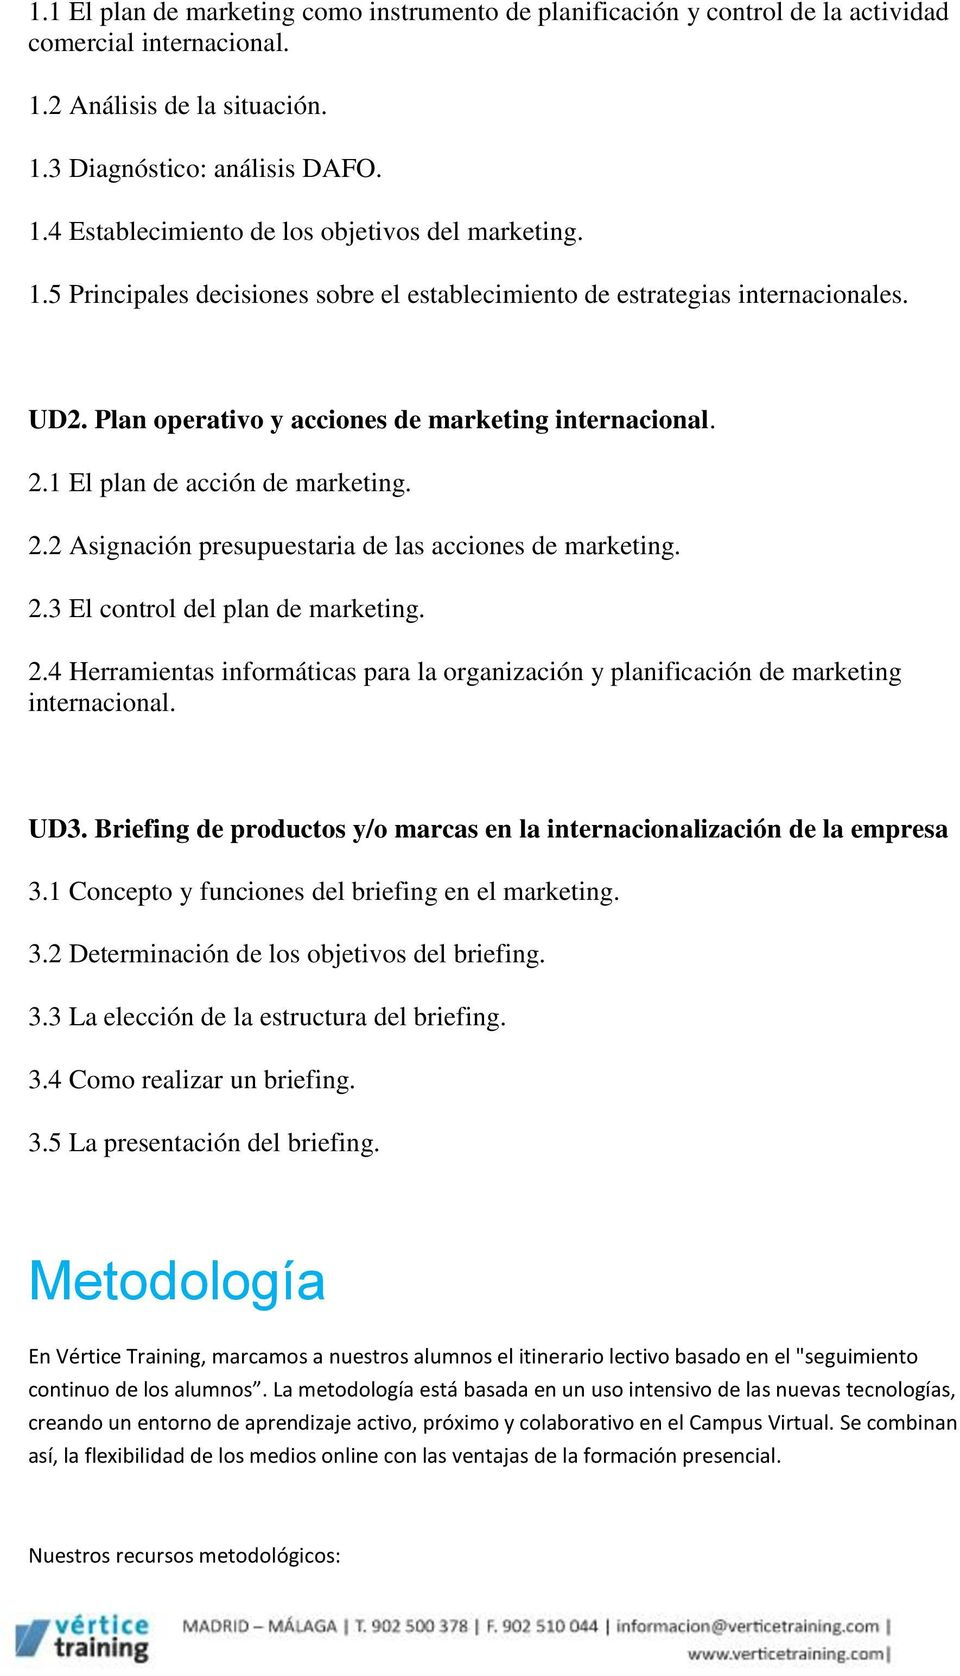 1 El plan de acción de marketing. 2.2 Asignación presupuestaria de las acciones de marketing. 2.3 El control del plan de marketing. 2.4 Herramientas informáticas para la organización y planificación de marketing internacional.